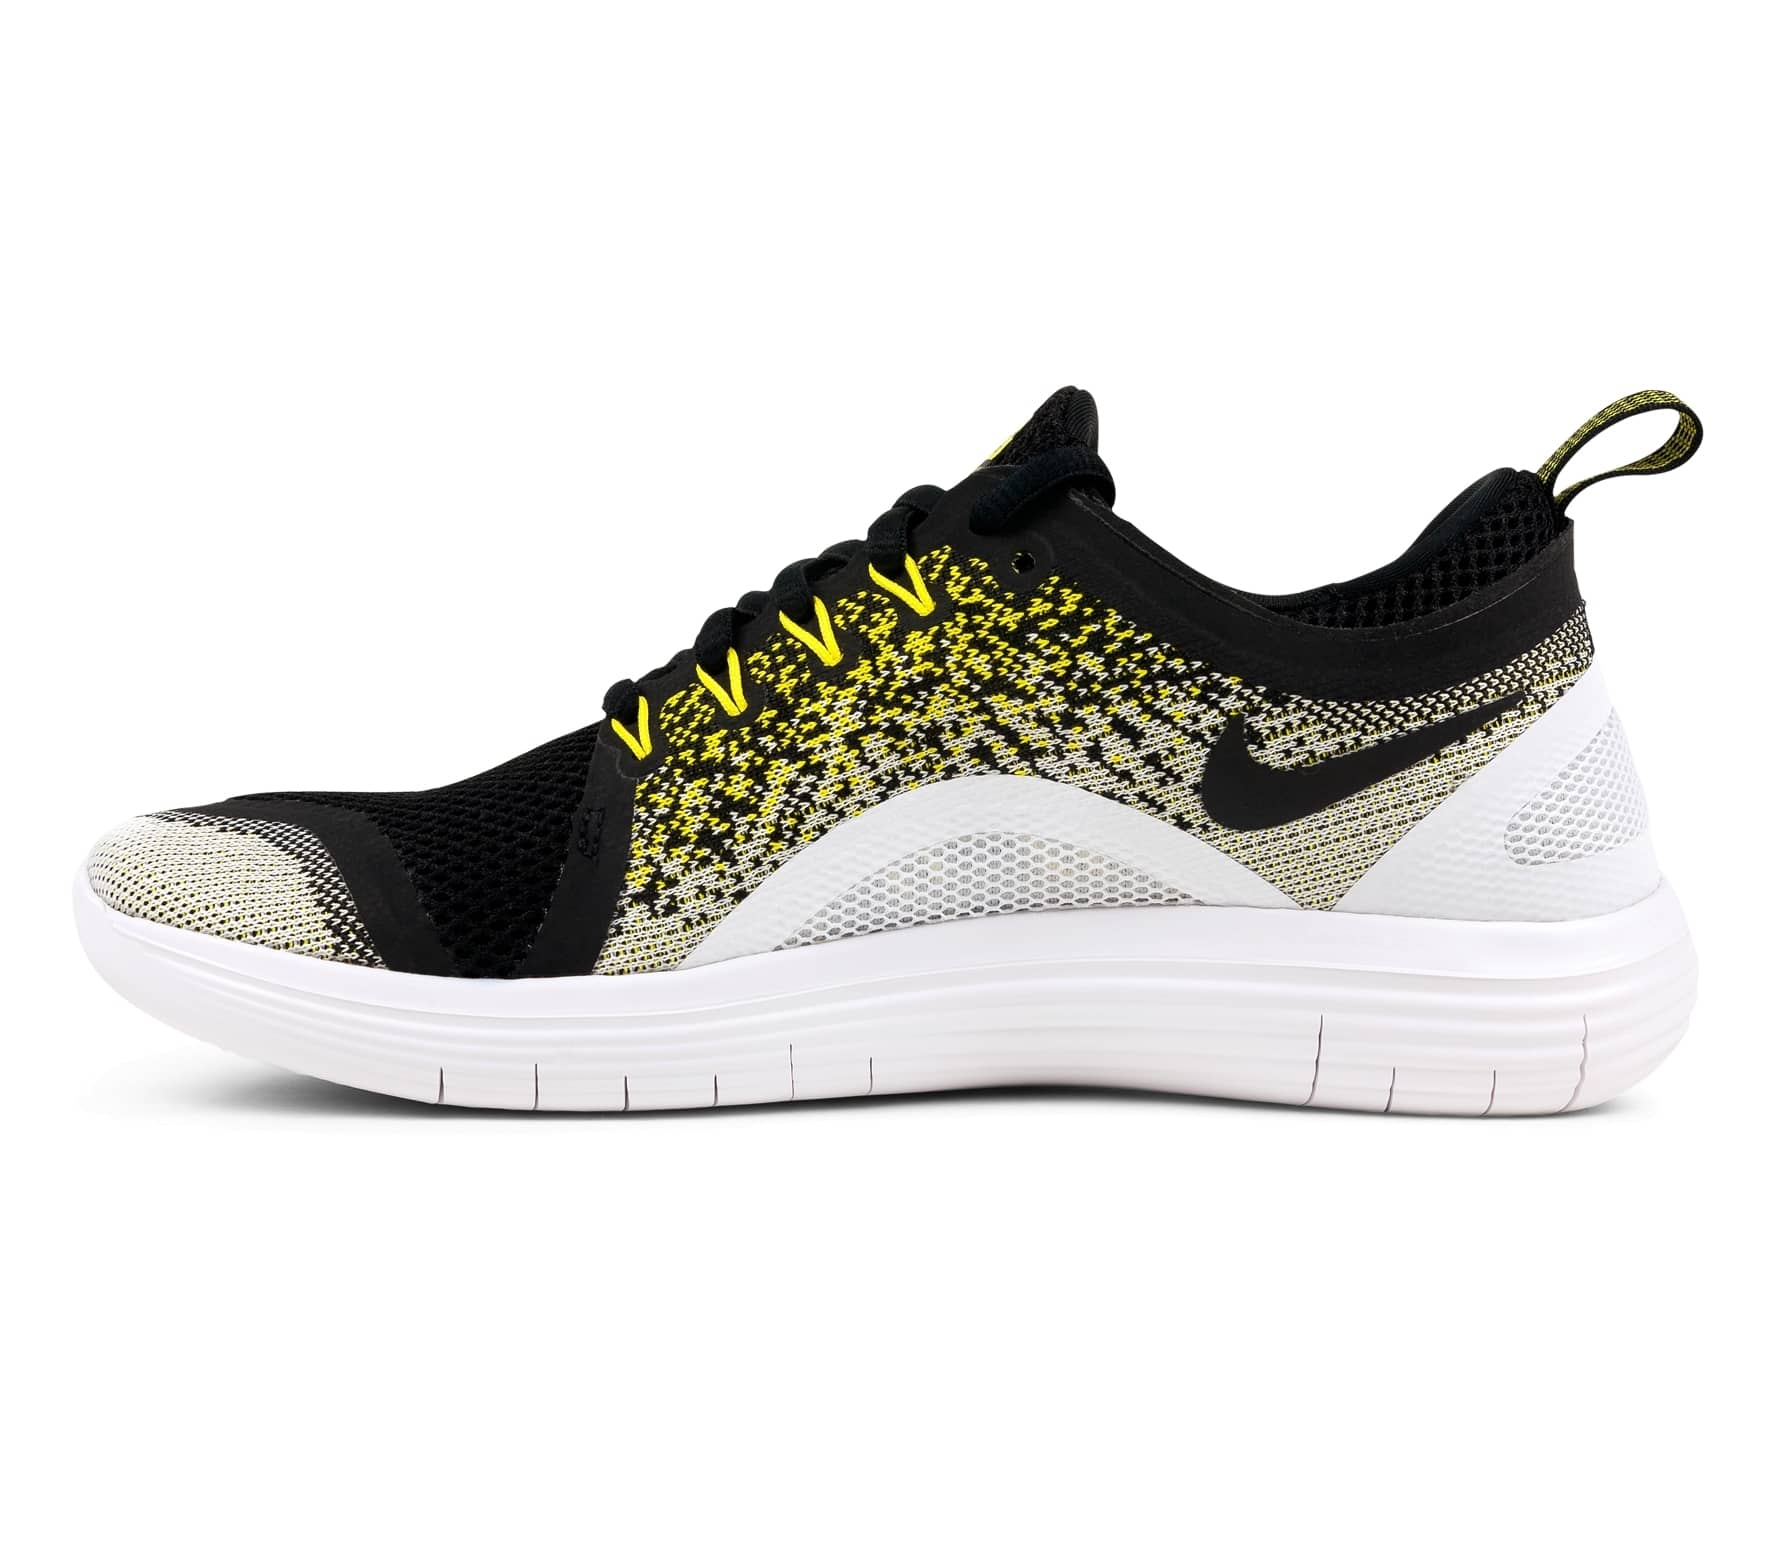 a65ae08bbe1 Nike - Free RN Distance 2 BSTN women s running shoes (black yellow ...